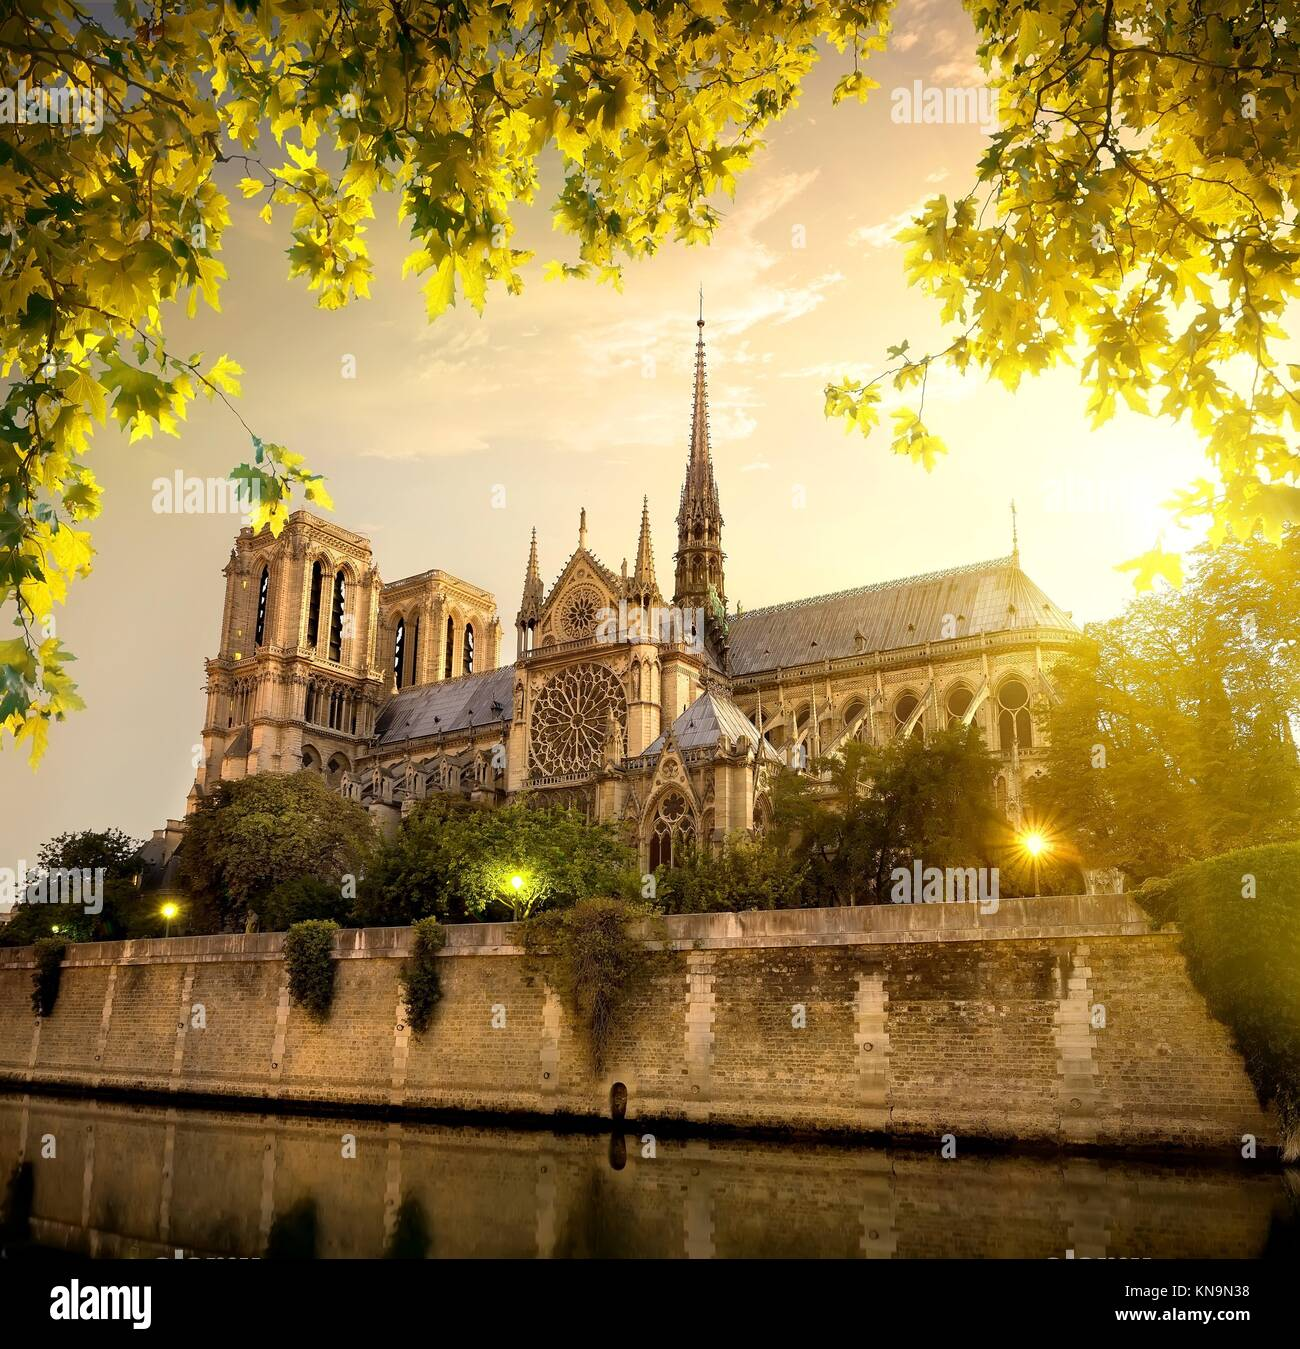 Notre Dame in Paris at sunset, France. - Stock Image